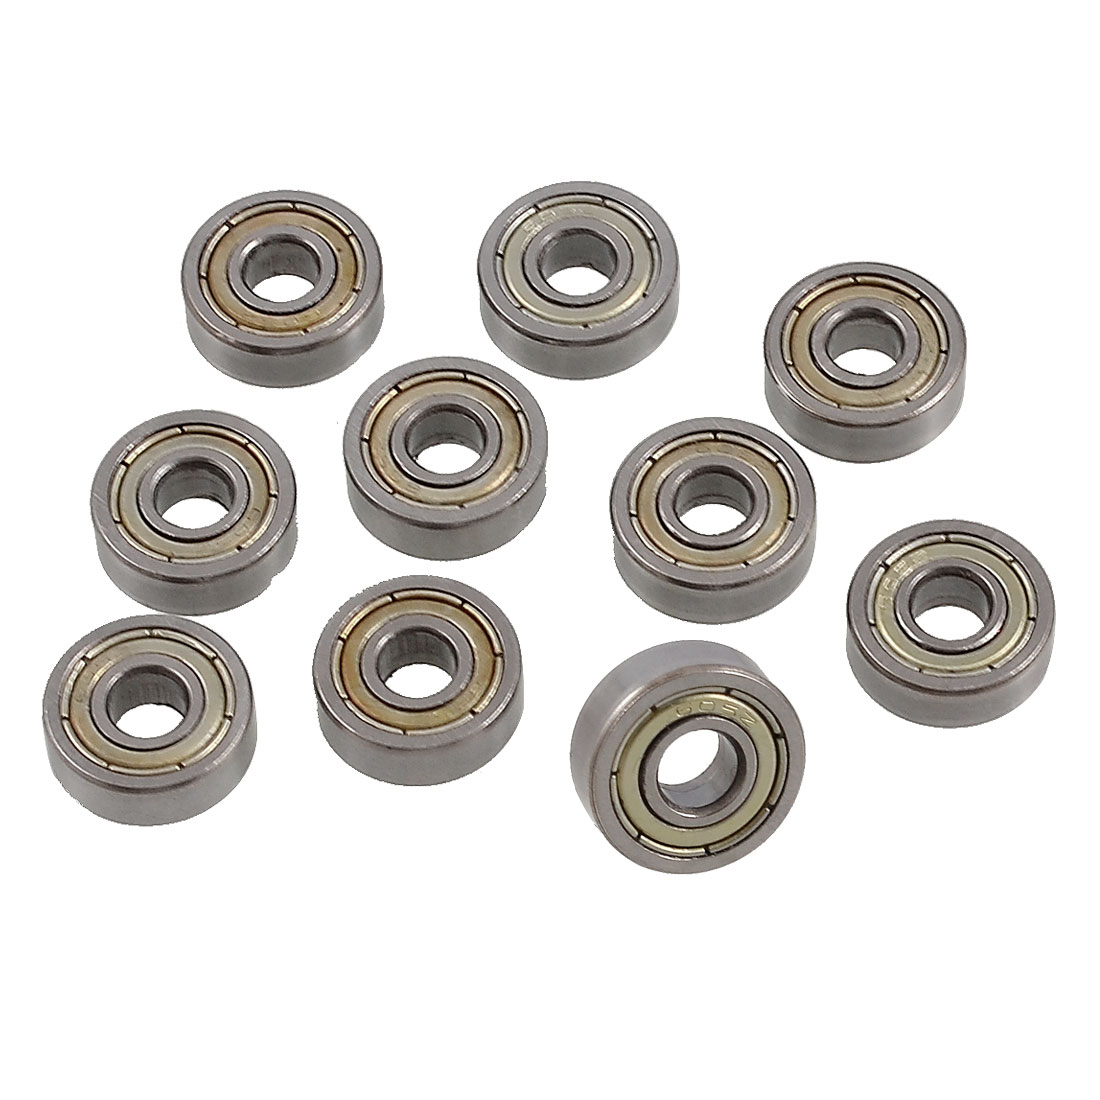 10 Pcs 605ZZ Single Row Deep Groove Ball Bearings 14mm x 5mm x 5mm